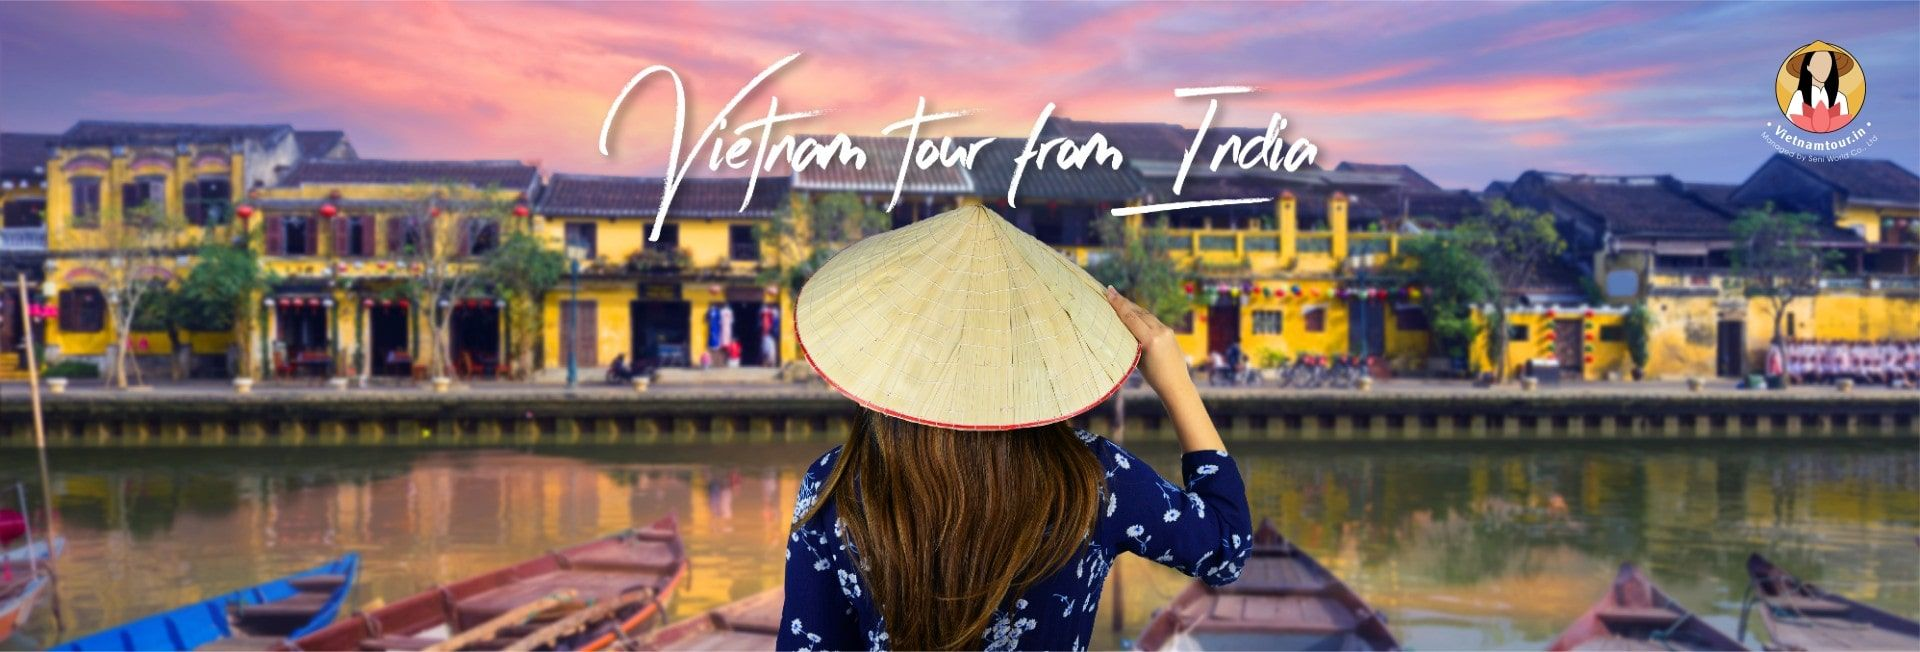 vietnam-tours-from-india-banner-003